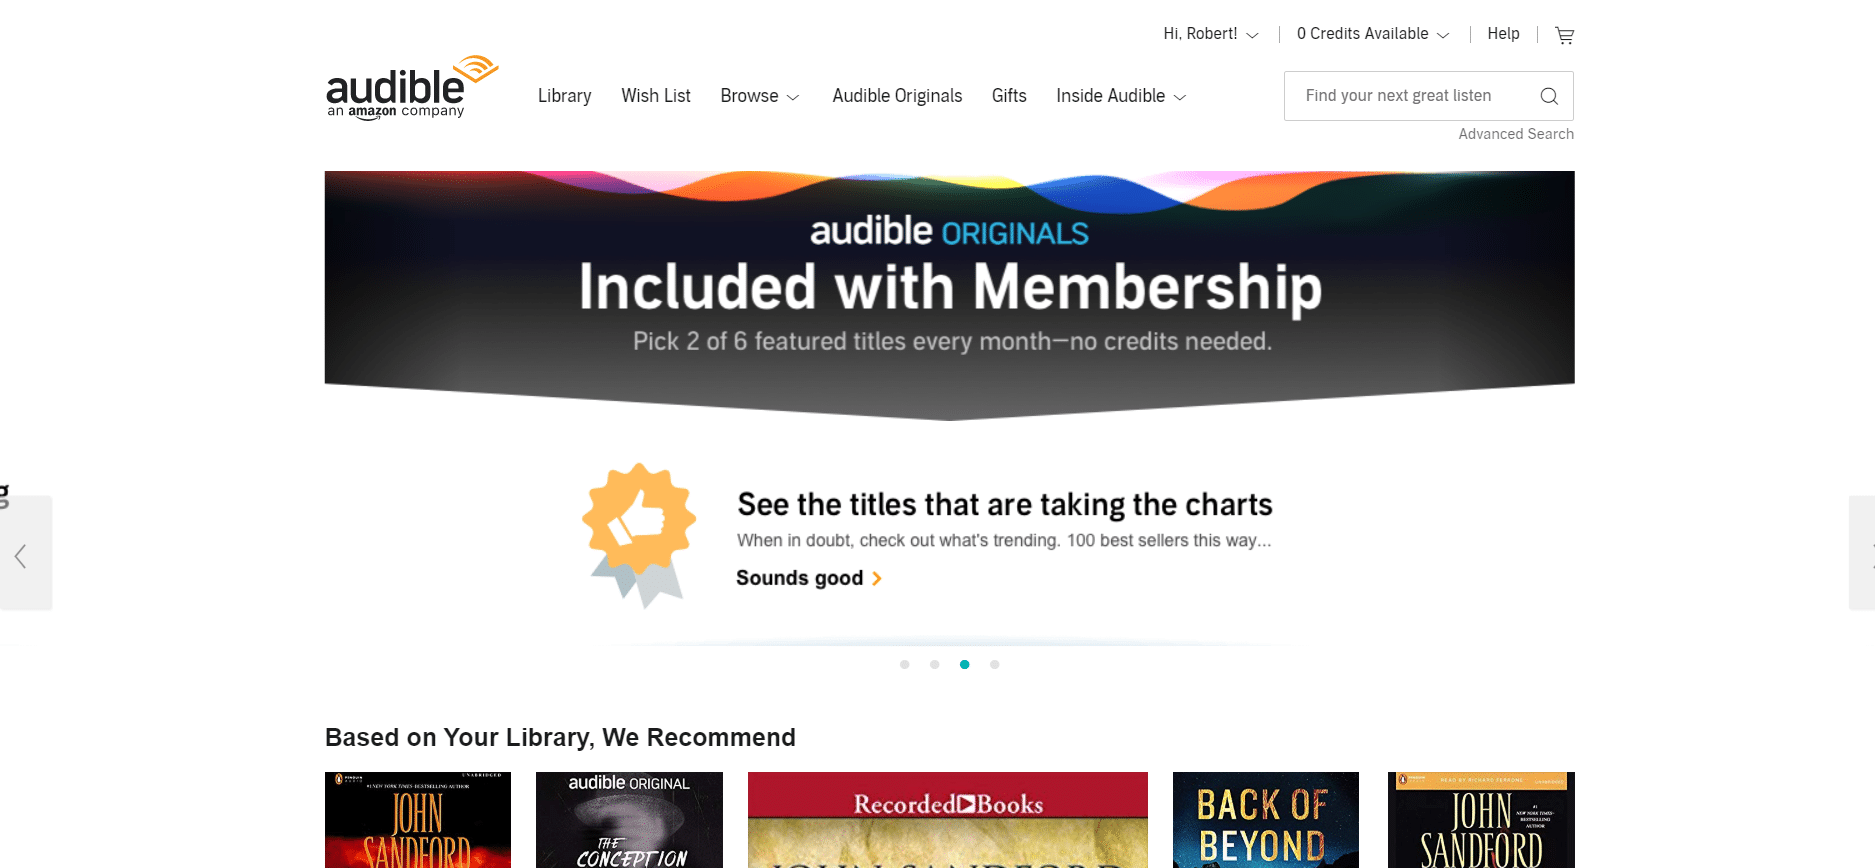 Amazon Audible Login How To Get Free Ebooks Legitimately 10 Clever And Legal Ways